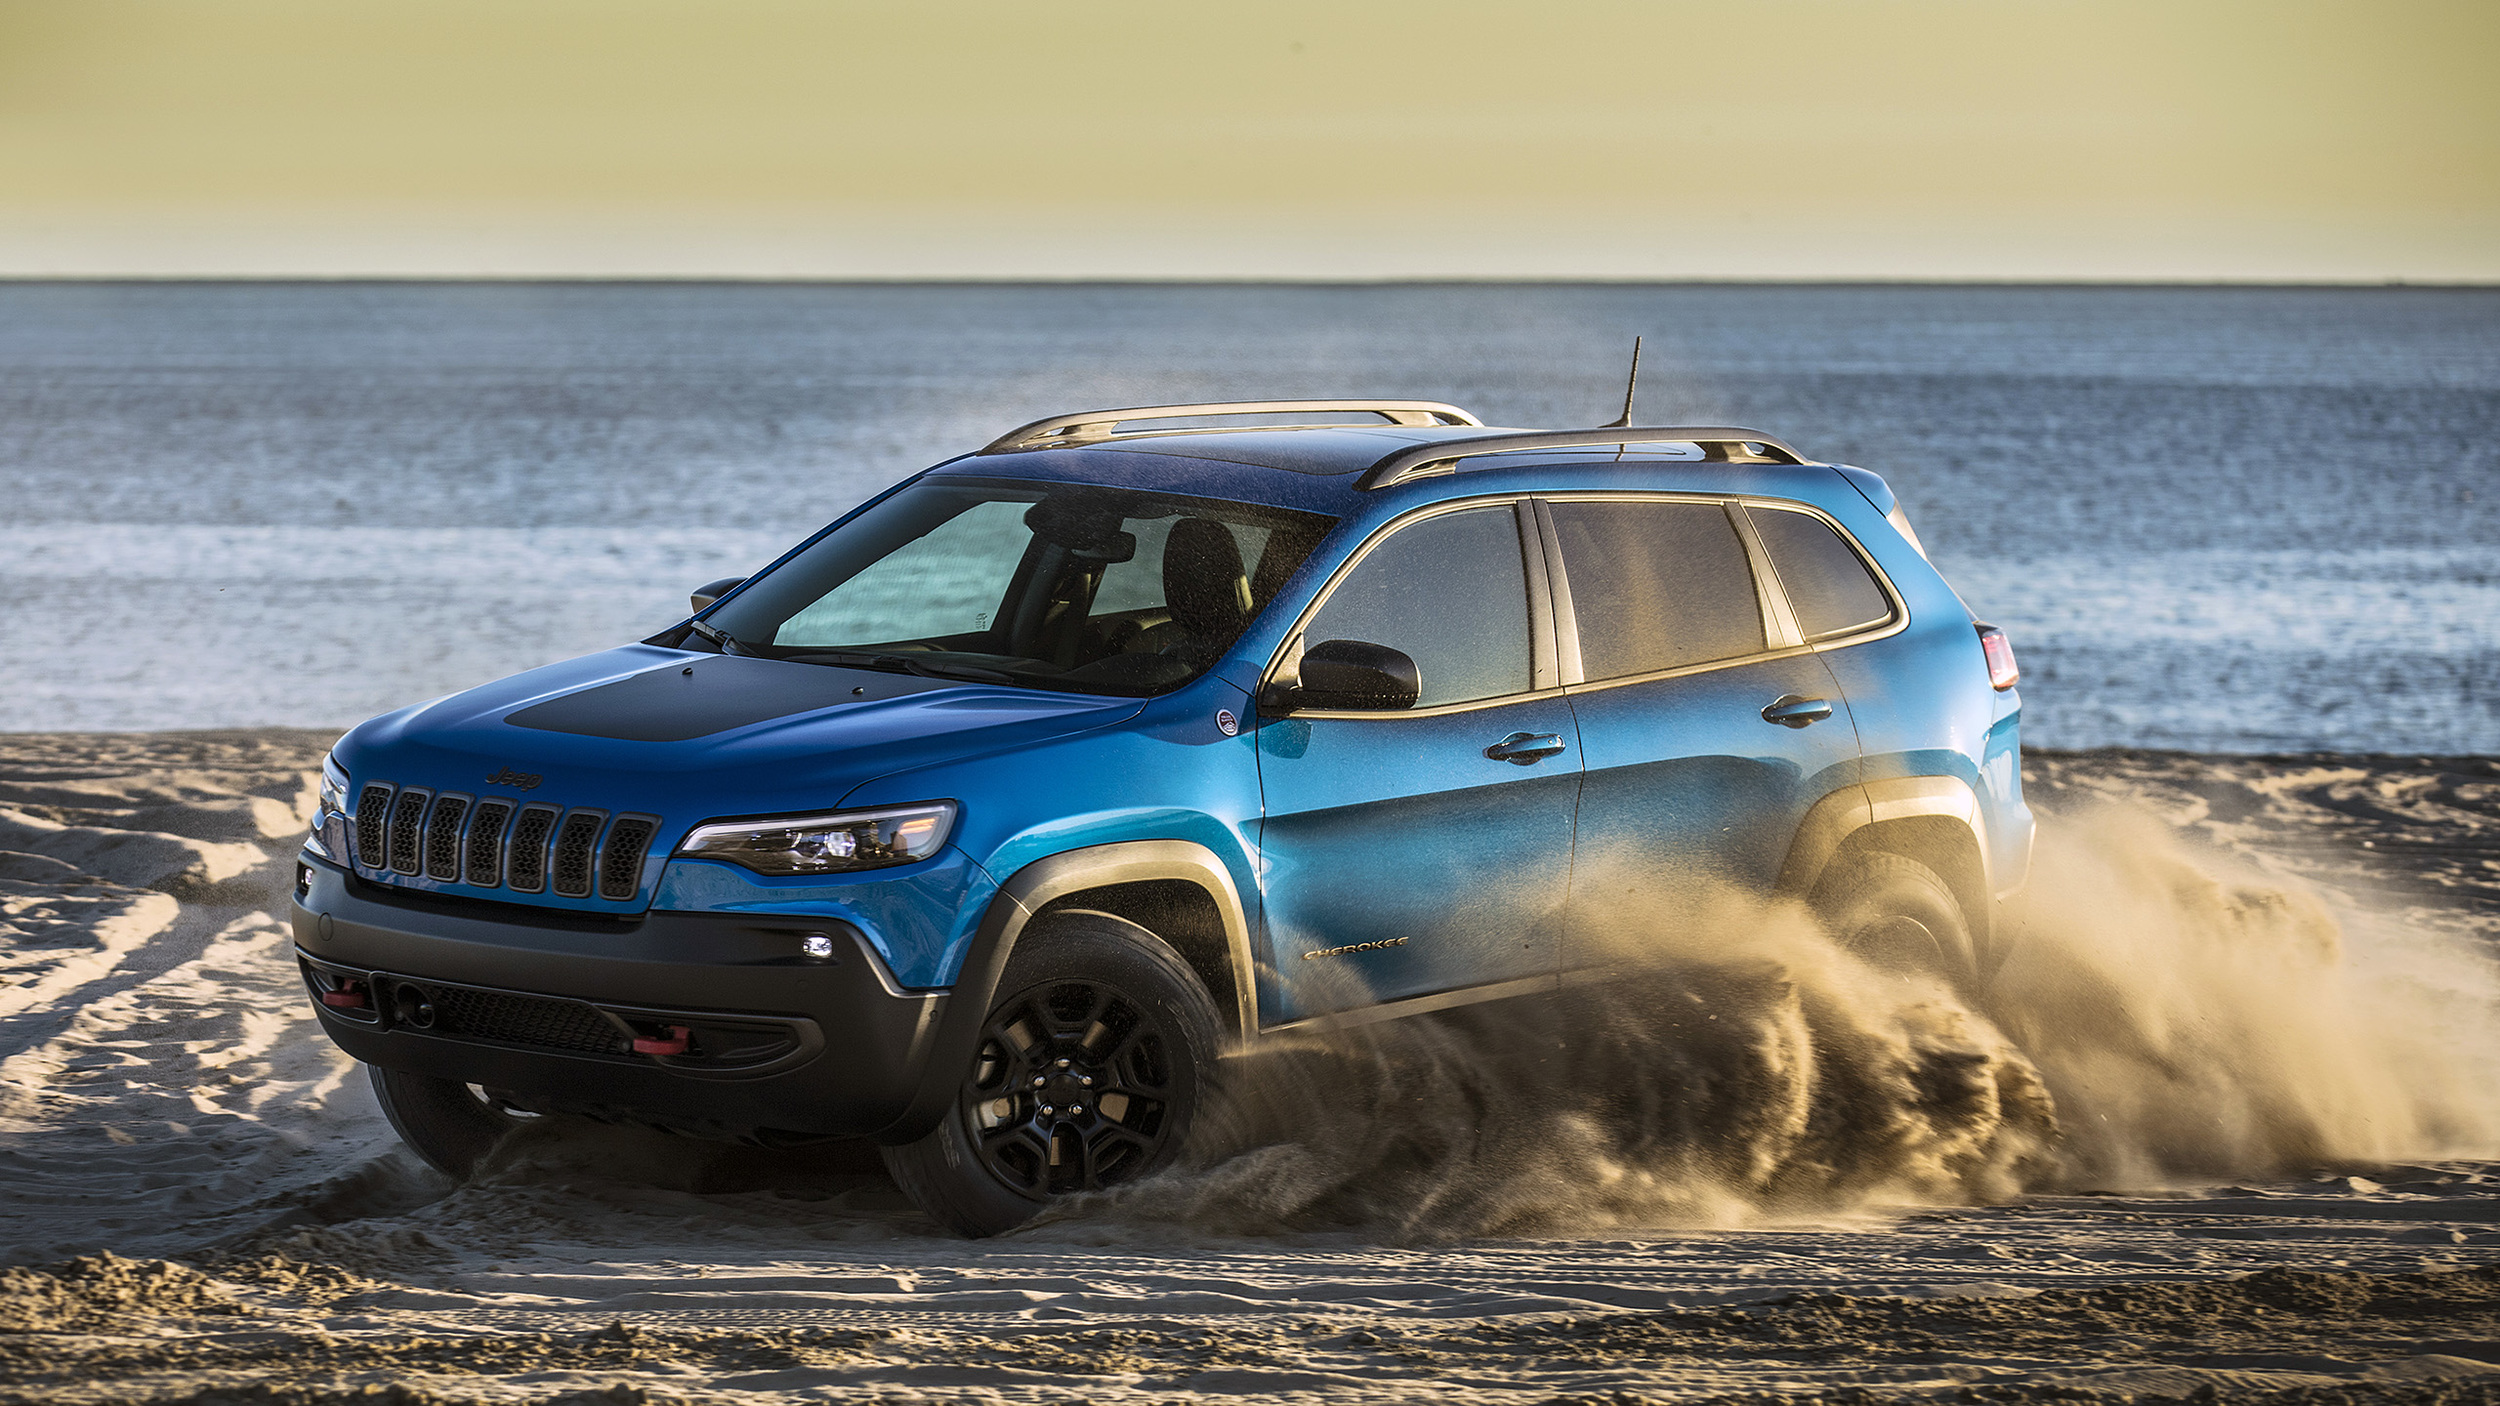 2019 Jeep Cherokee is a truck-like crossover with advantages off